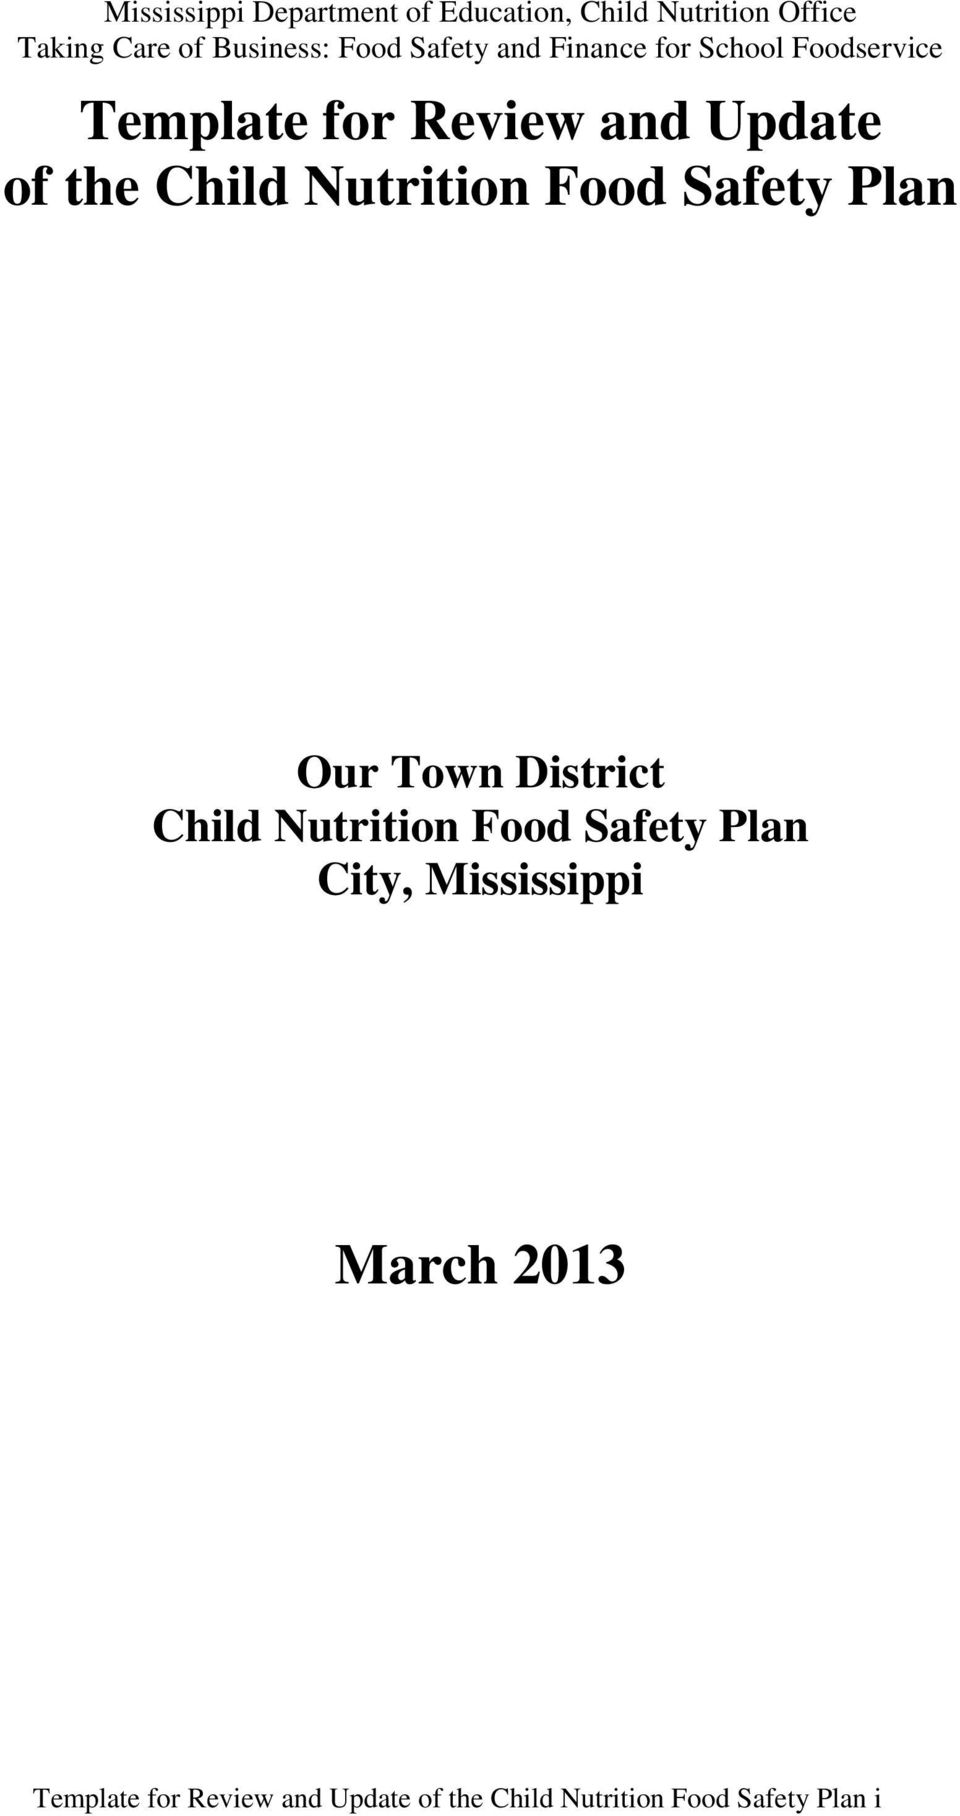 Our Town District Child Nutrition Food Safety Plan City, Mississippi